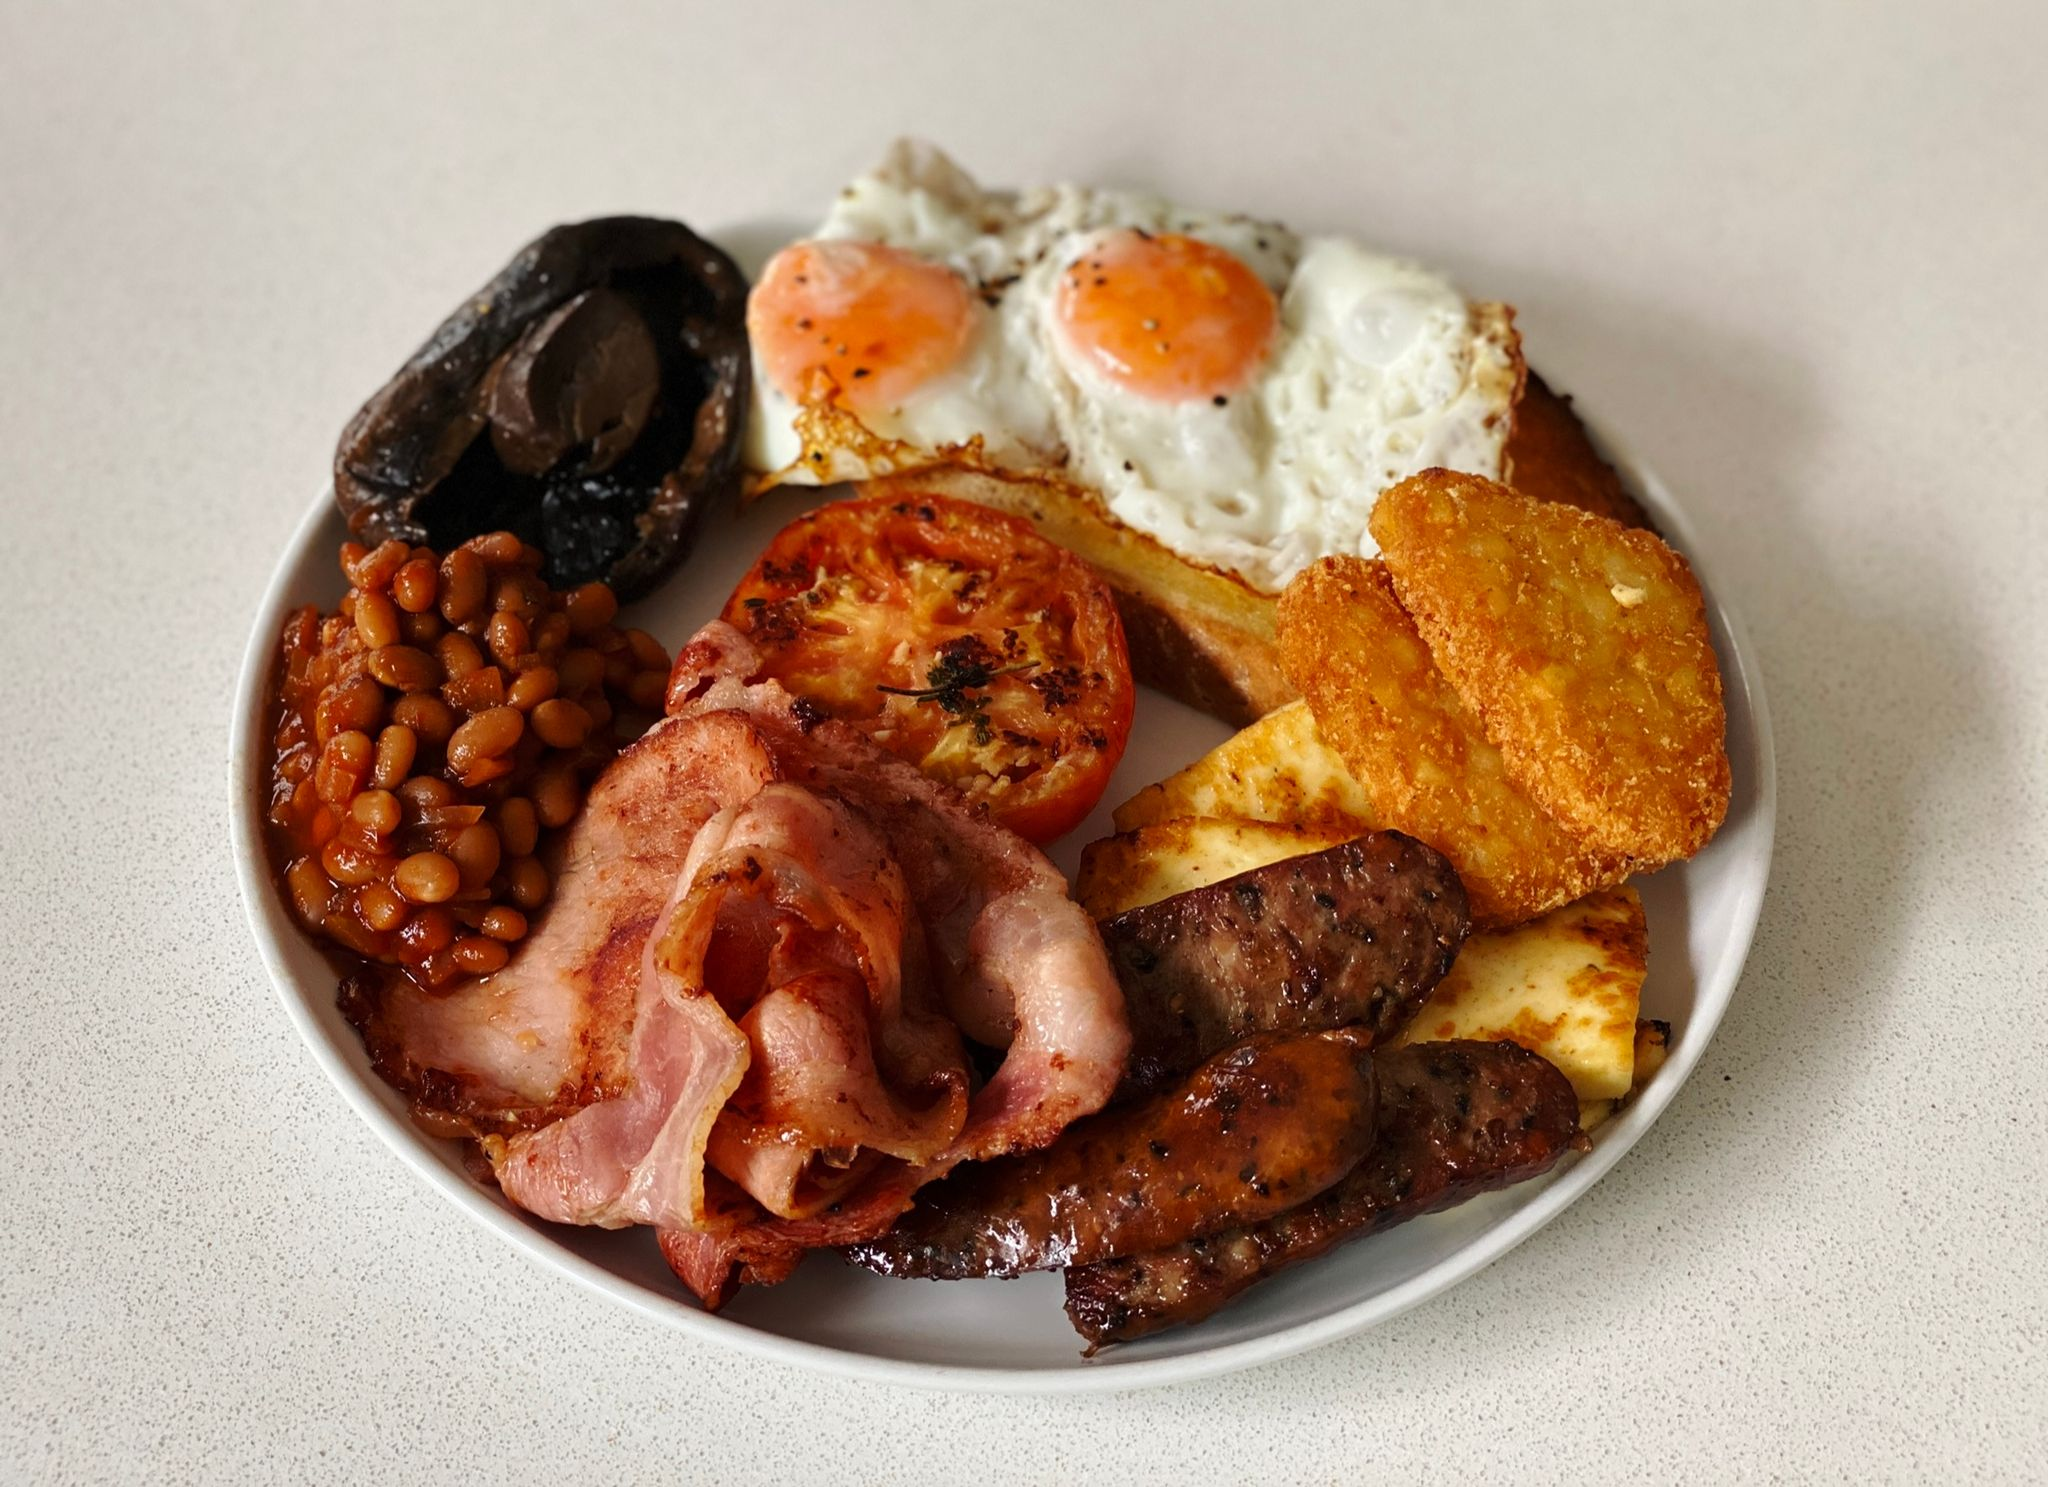 A photo of a not-insignificantly-sized dinner plate that's ENTIRELY covered with food: two eggs on a large piece of sourdough, bacon, mushroom, tomato, haloumi, hashbrowns, sausages, and baked beans.